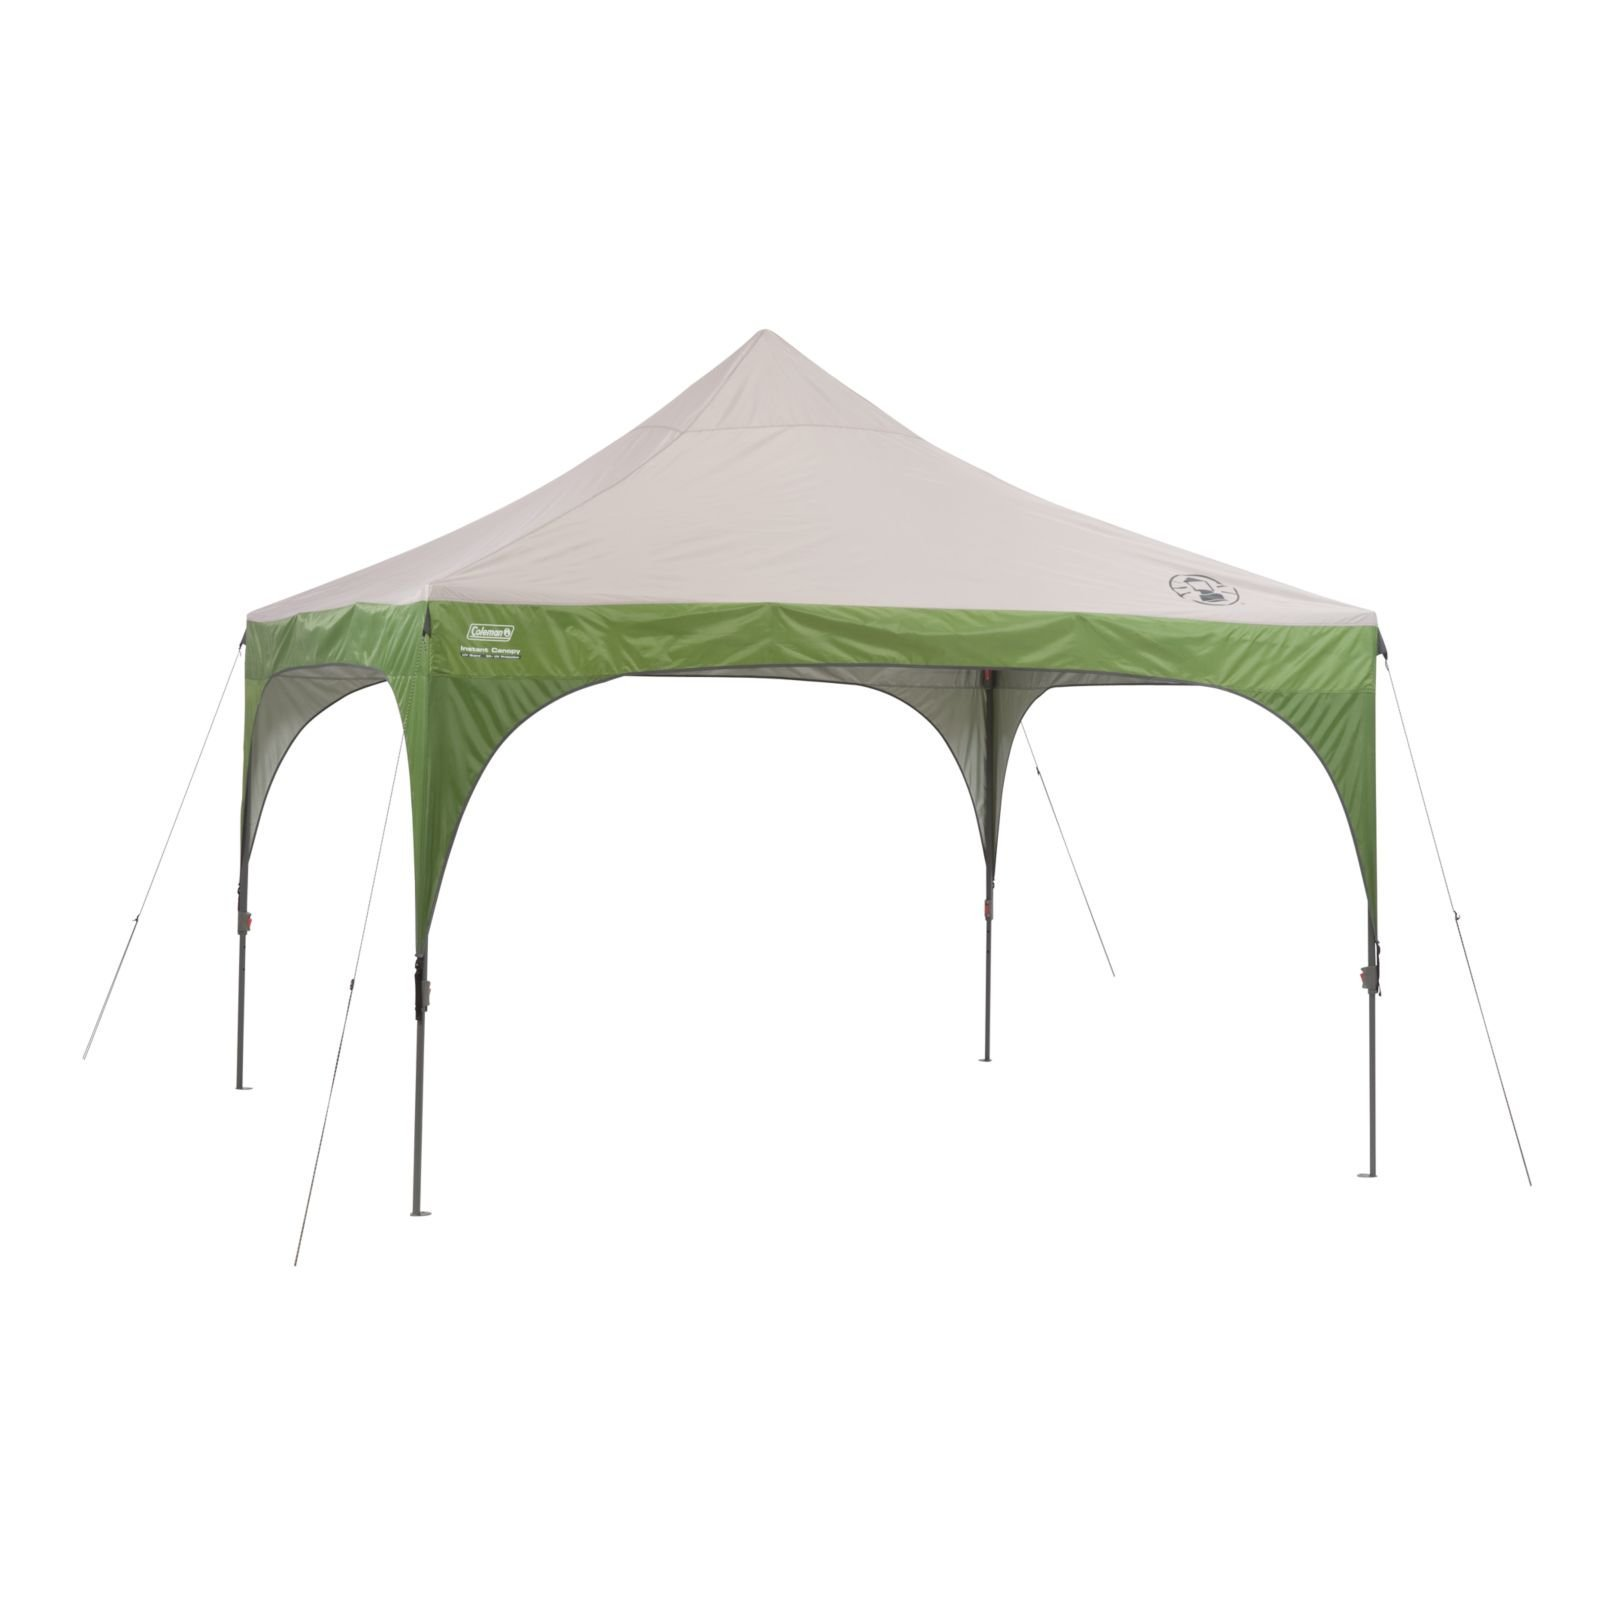 Coleman Instant Beach Canopy, 12 x 12 Feet by Coleman (Image #1)